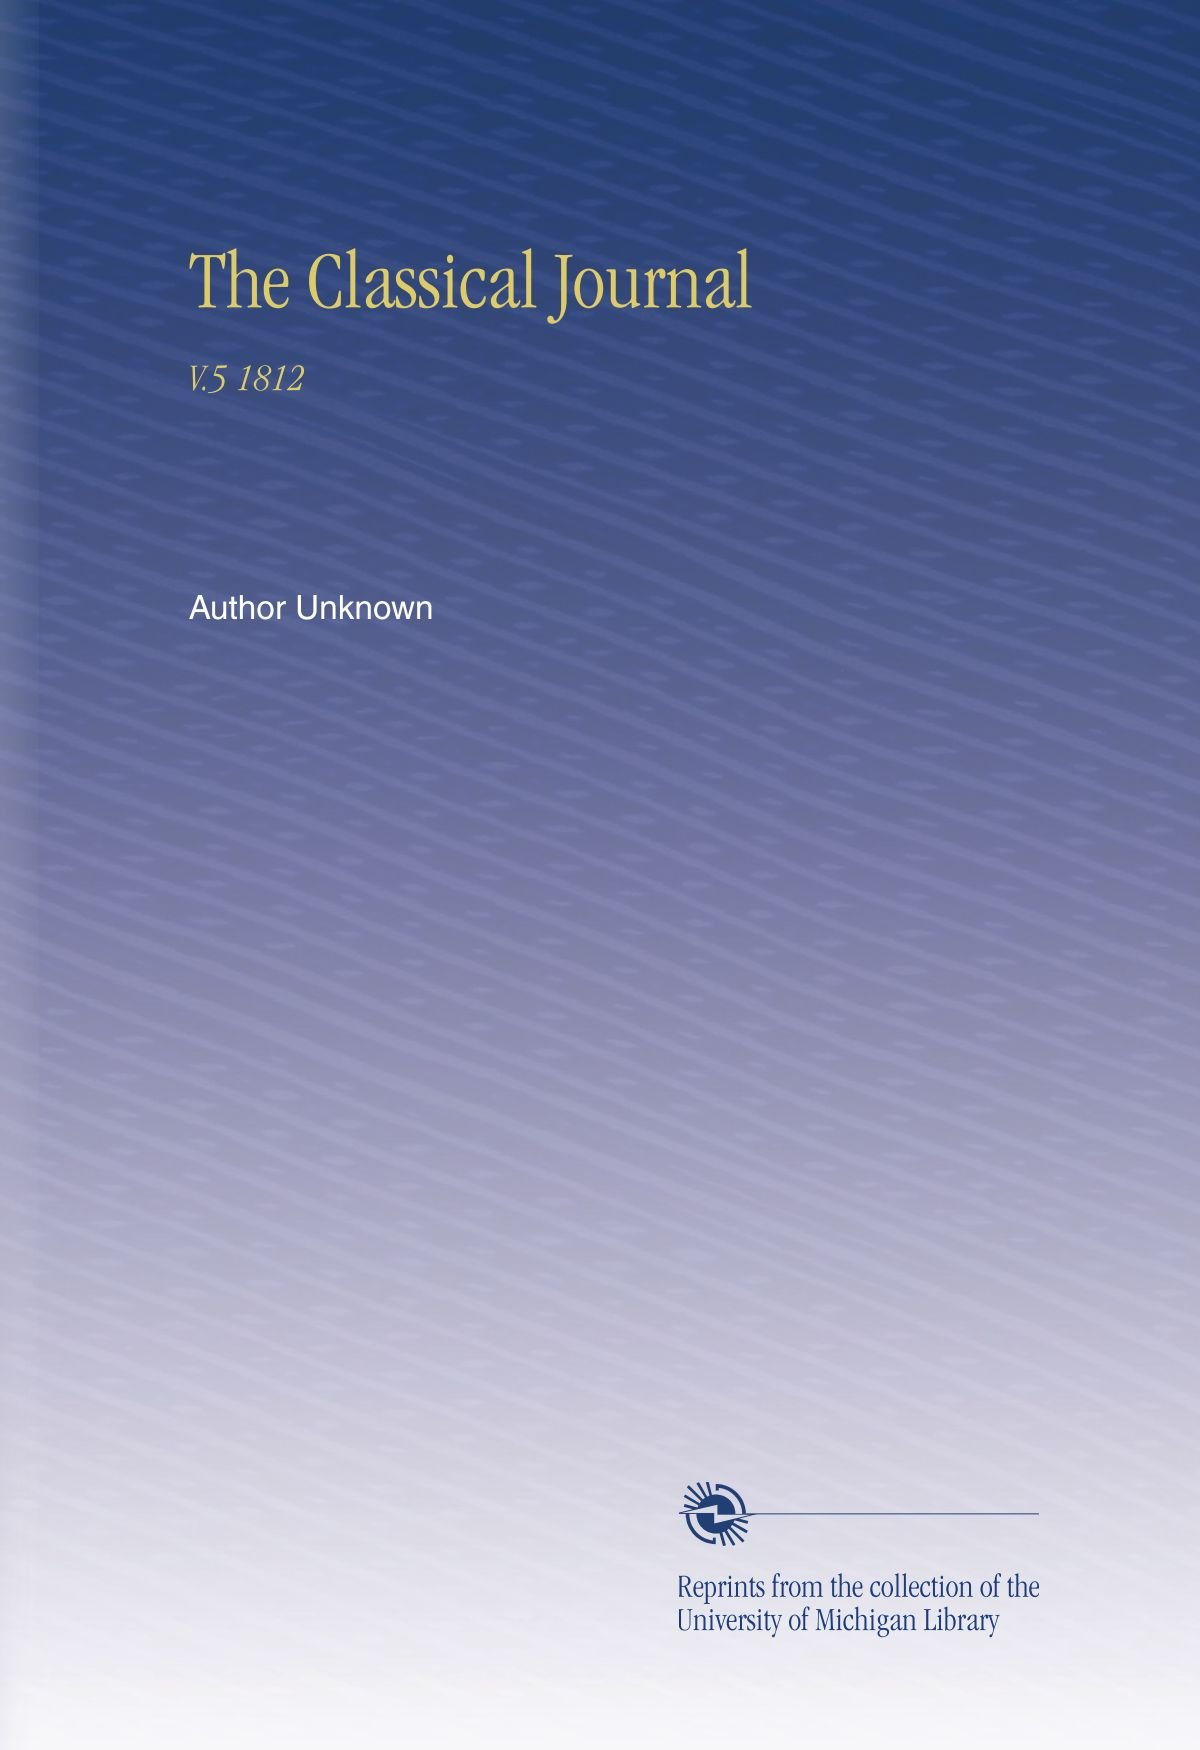 Download The Classical Journal: V.5 1812 PDF